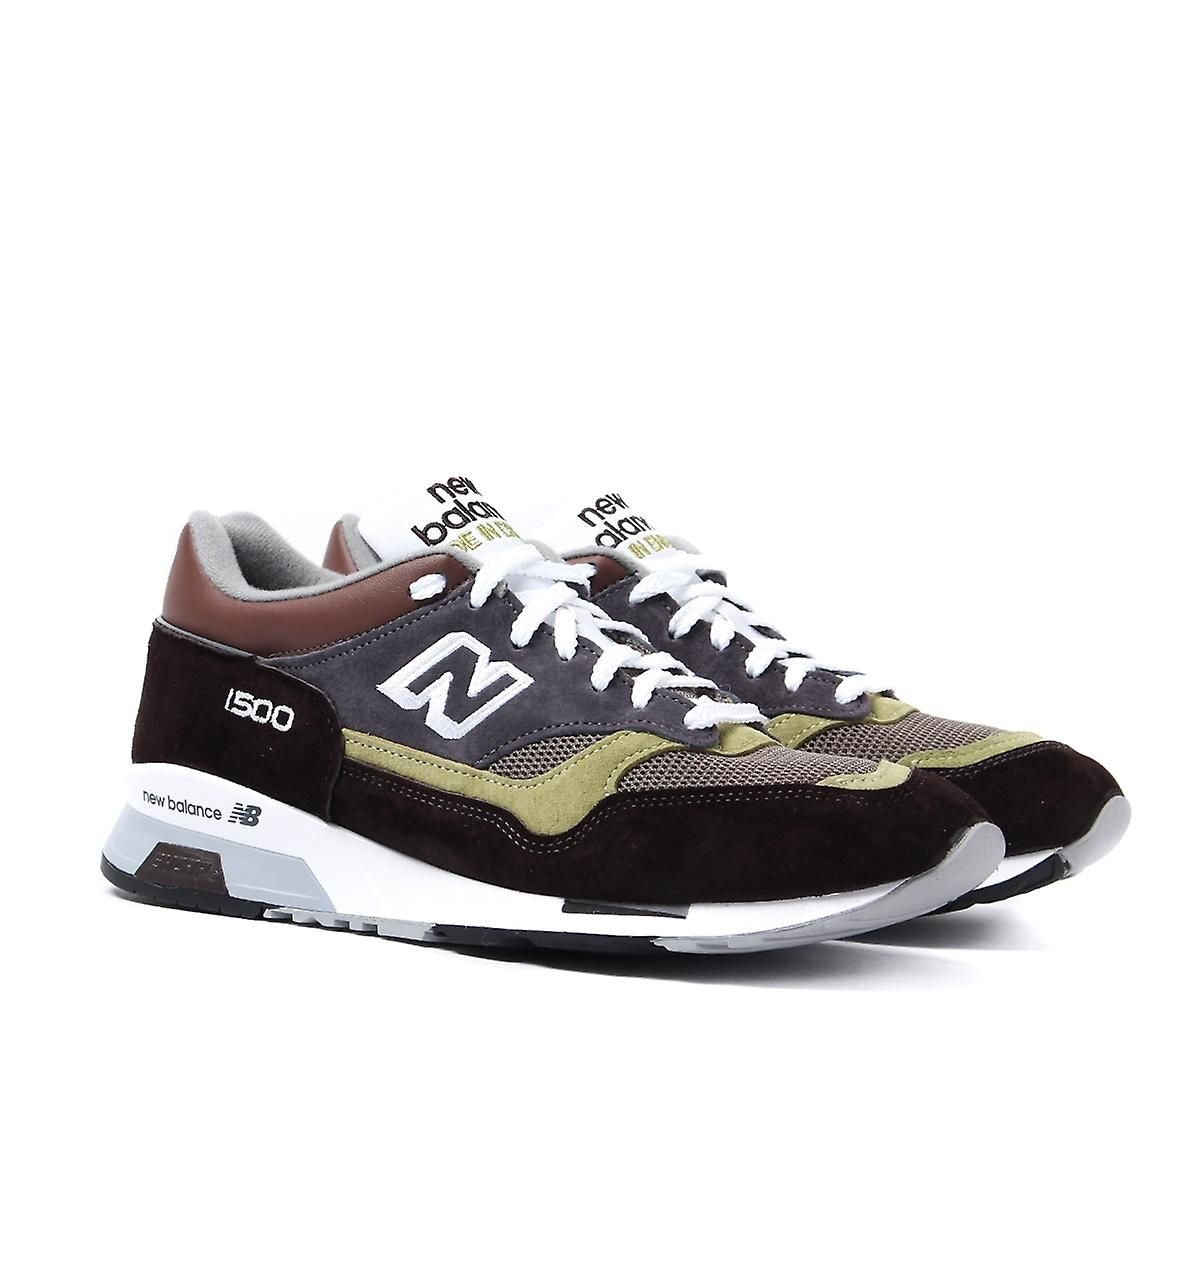 New Balance 1500 Made in England Brown, Green & Grey ...